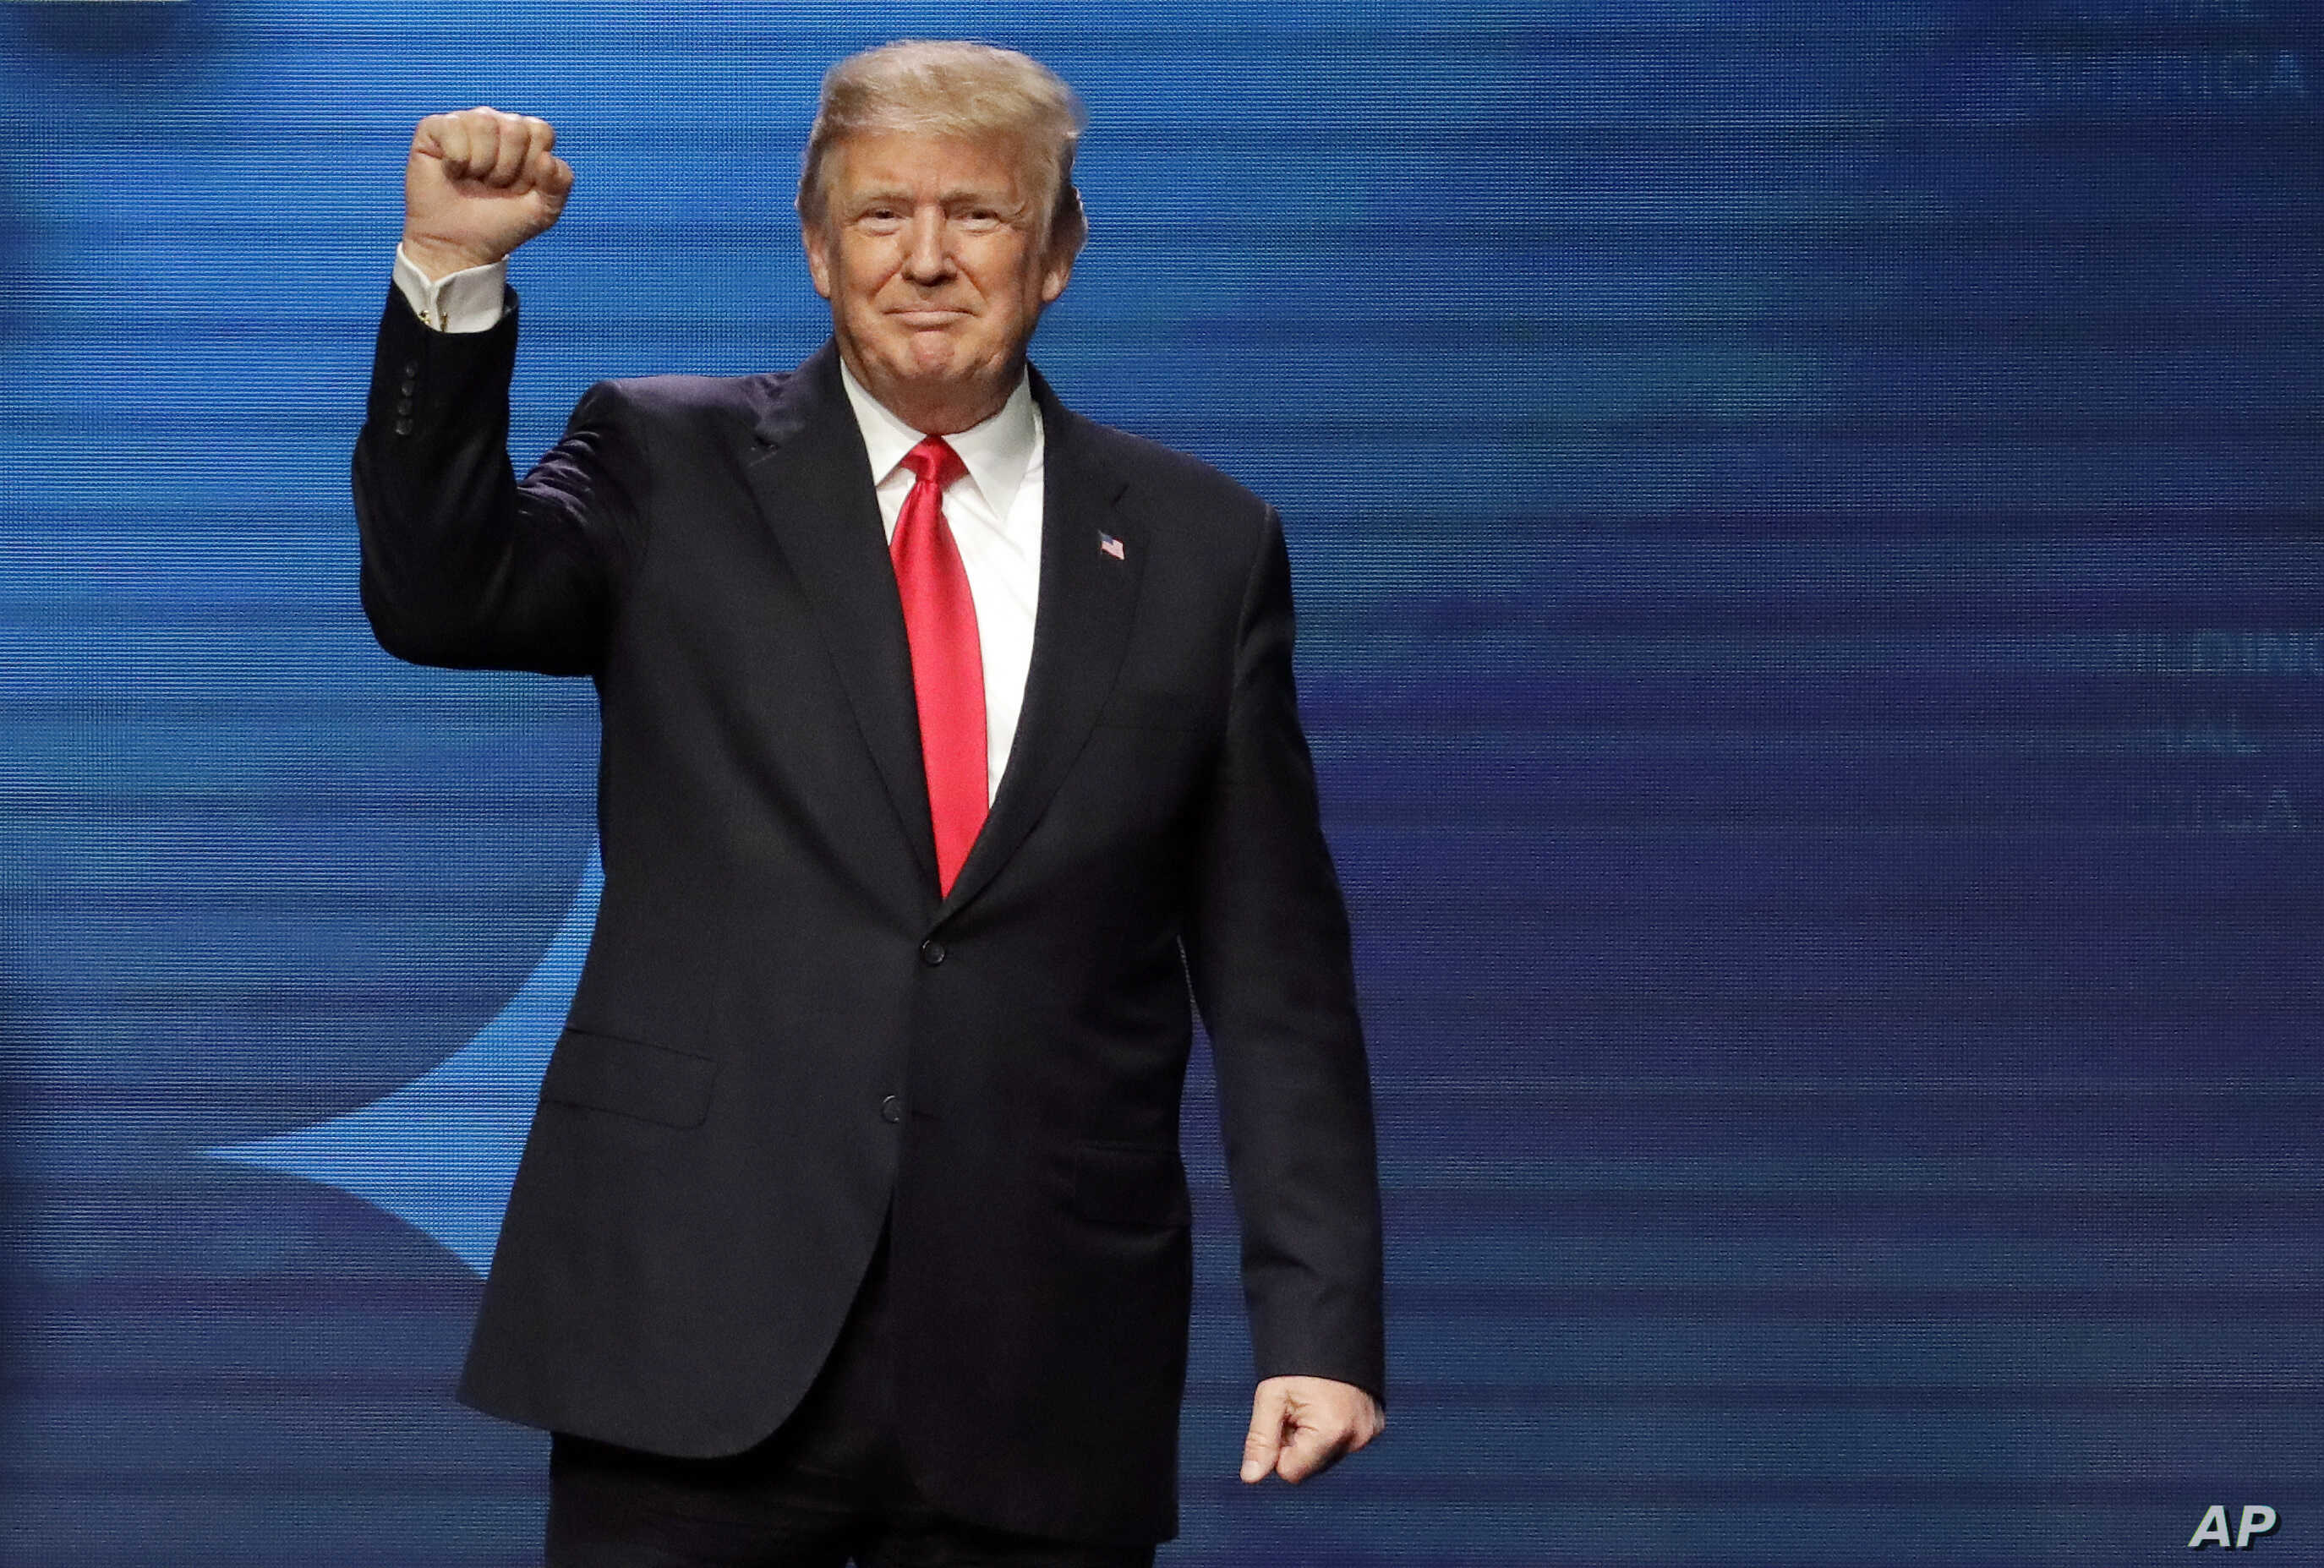 President Donald Trump acknowledges applause after speaking at the American Farm Bureau Federation annual convention Monday, Jan. 8, 2018, in Nashville, Tenn.